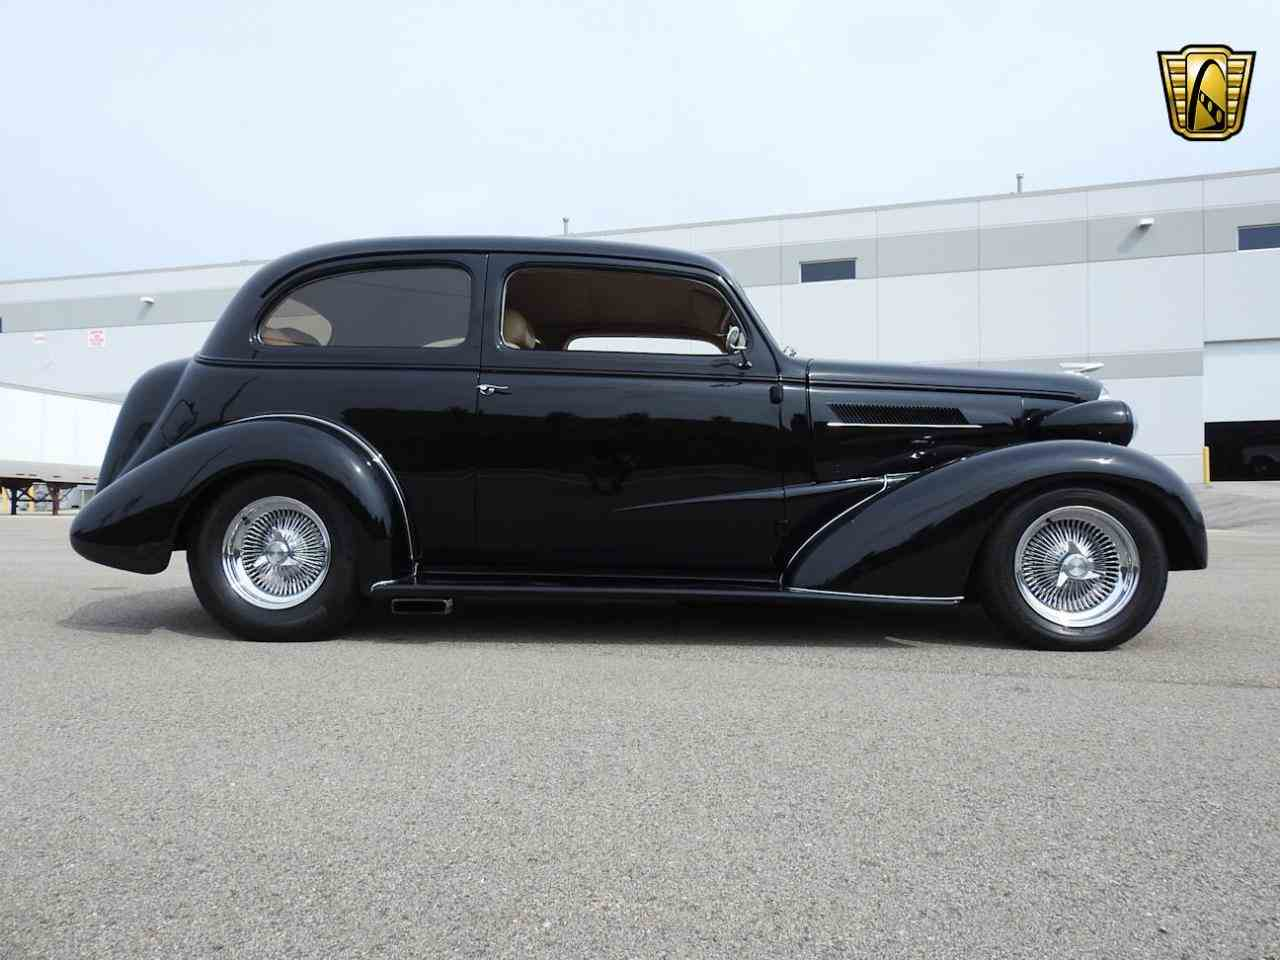 Large Picture of Classic '37 Chevrolet Street Rod - $52,000.00 - MZDR